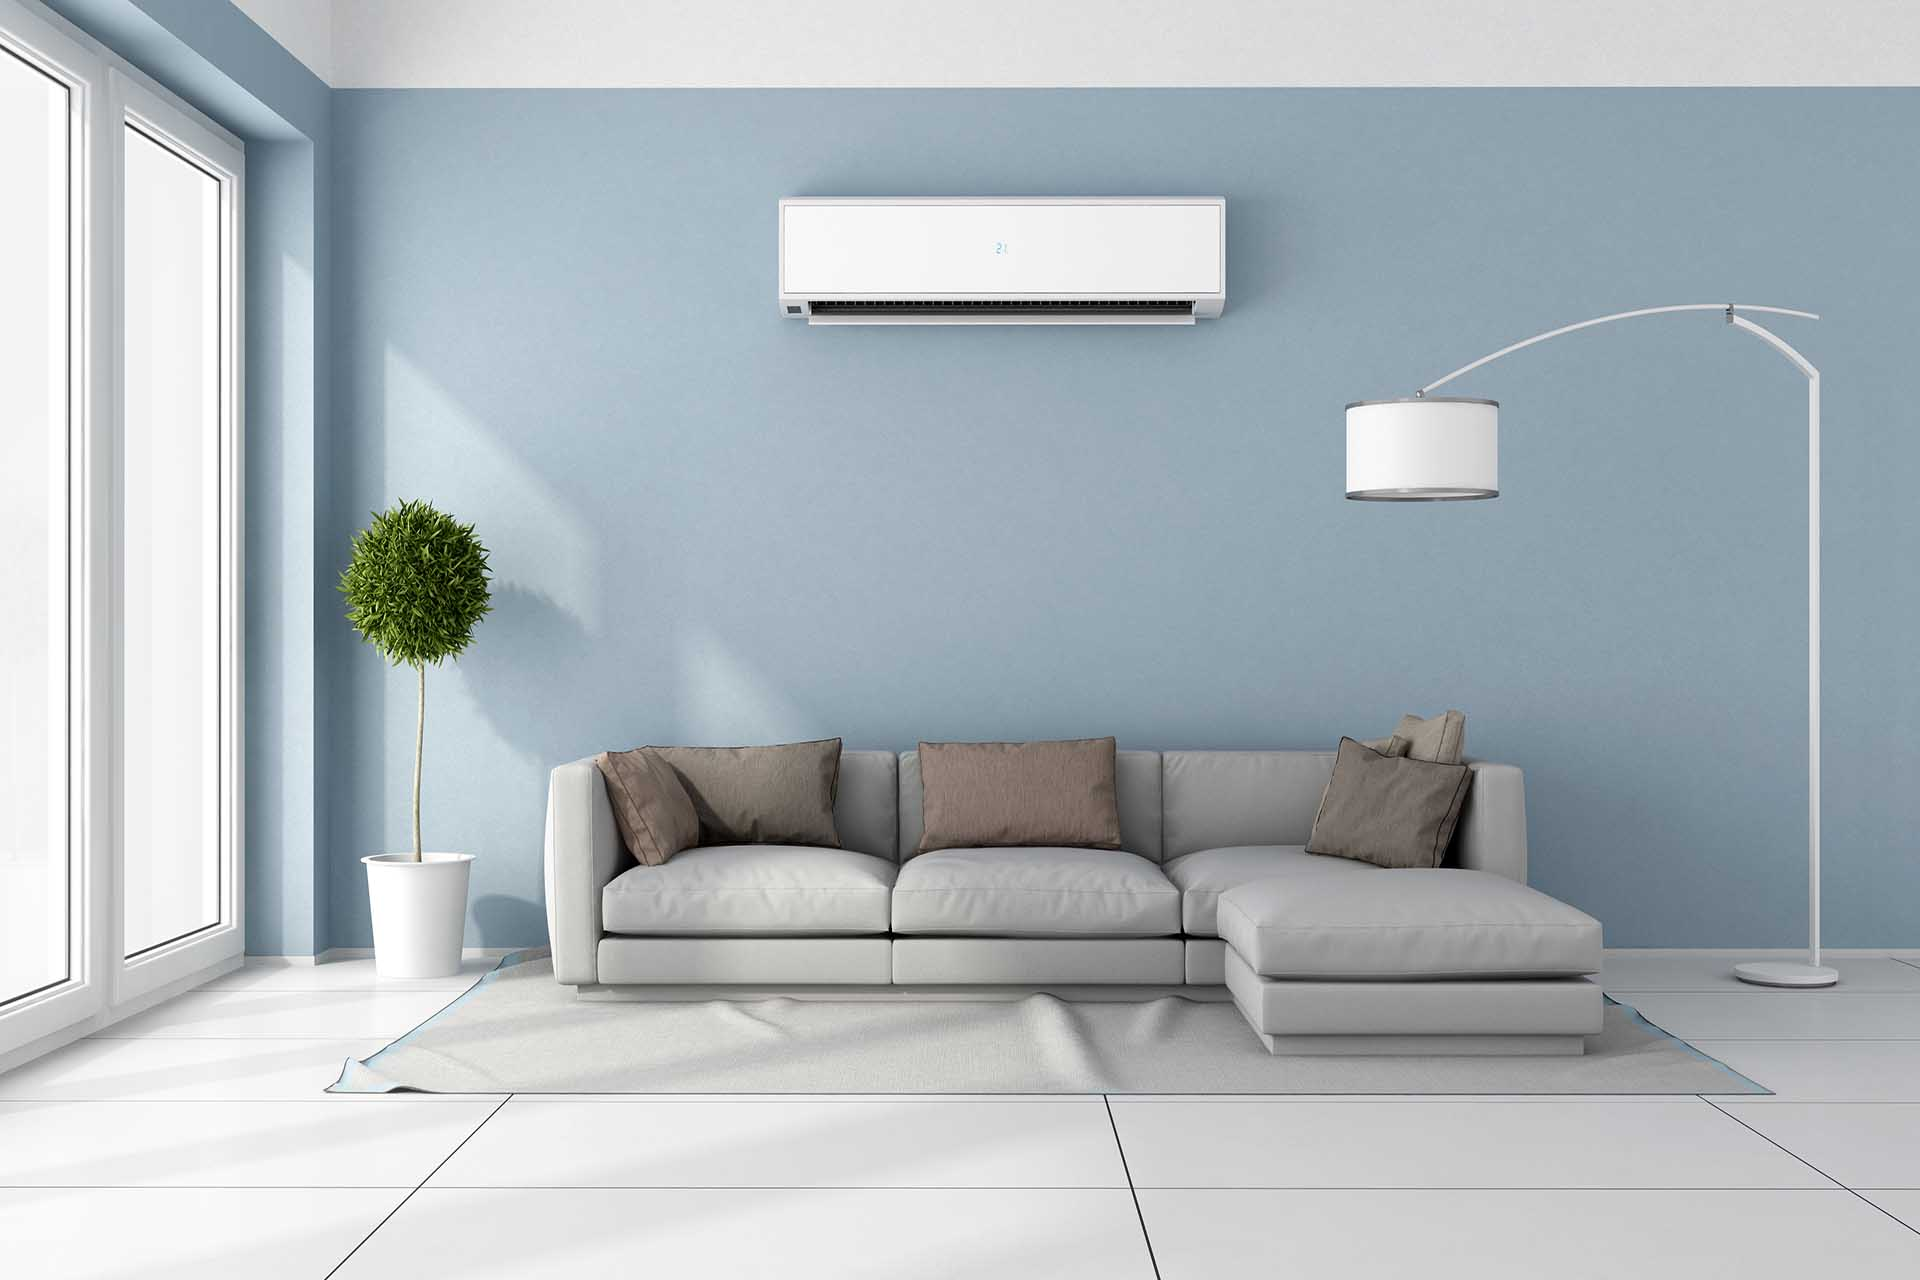 What are the Benefits of Ductless Air Conditioning?